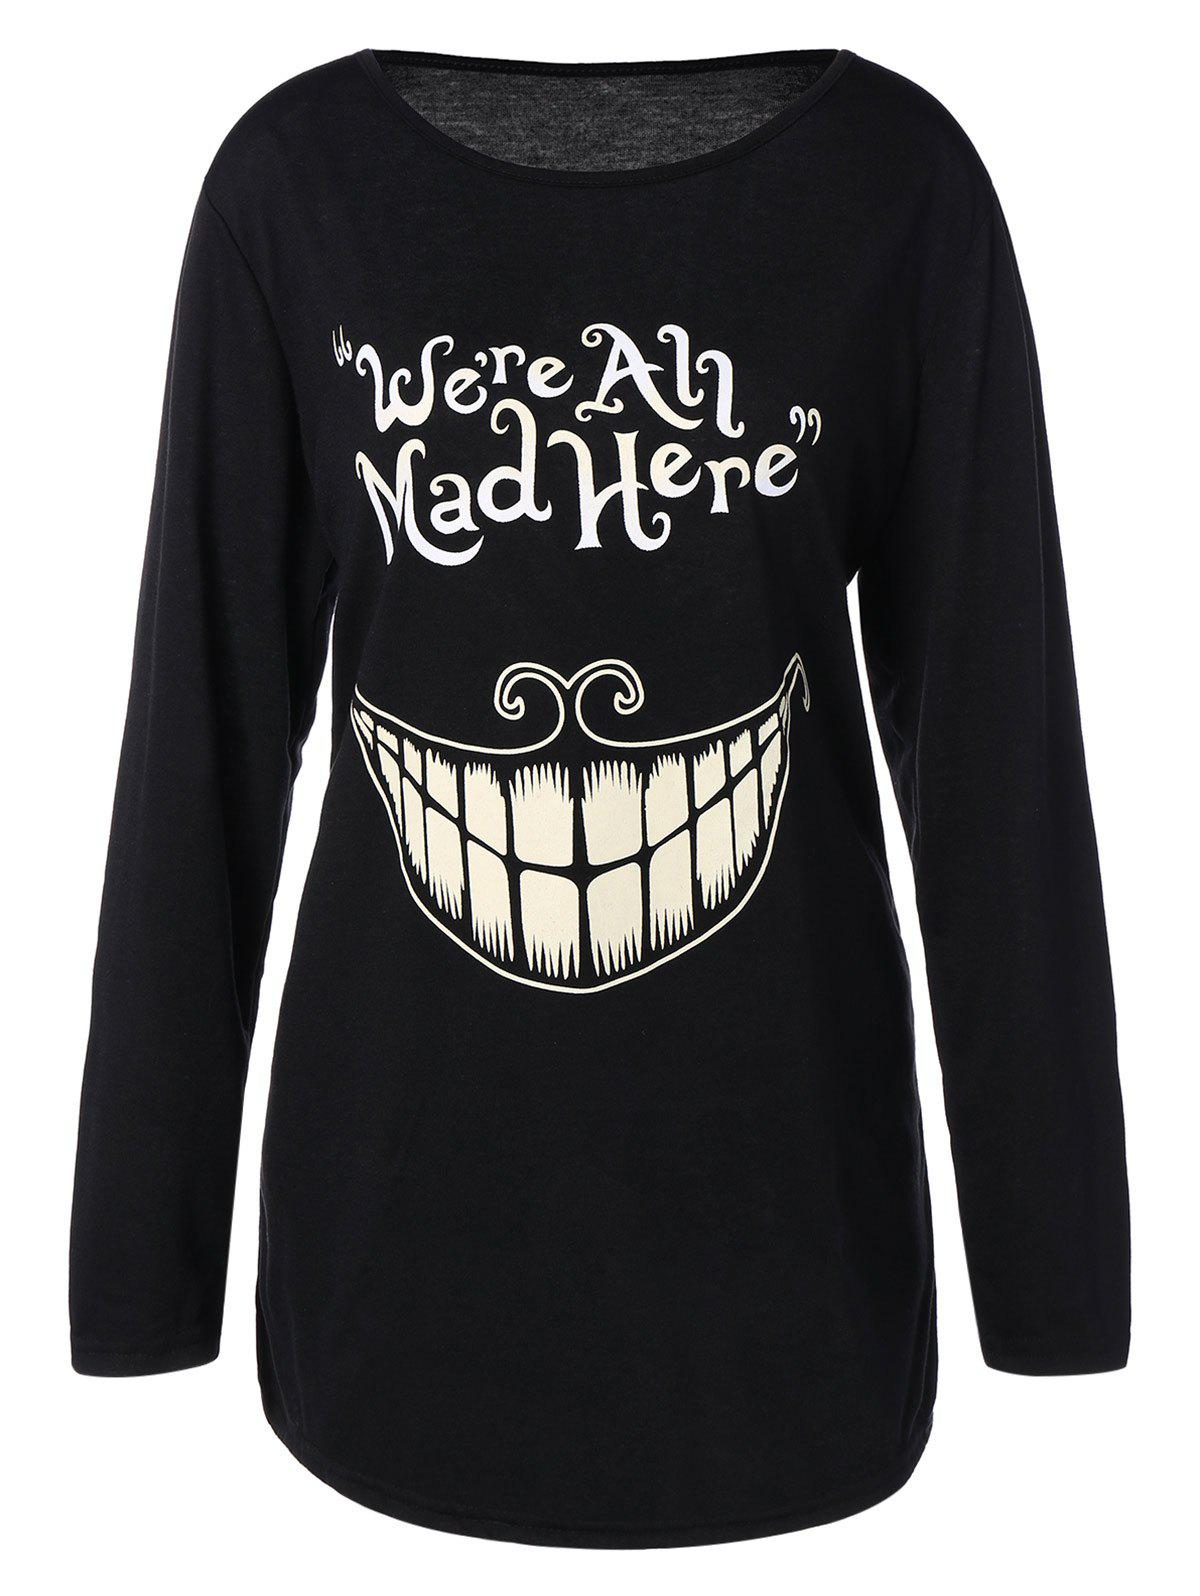 Plus Size Teeth and Letter Print T-shirtWOMEN<br><br>Size: 2XL; Color: BLACK; Material: Polyester,Spandex; Shirt Length: Long; Sleeve Length: Full; Collar: Jewel Neck; Style: Casual; Season: Fall,Spring; Pattern Type: Letter; Weight: 0.2510kg; Package Contents: 1 x T-Shirt;